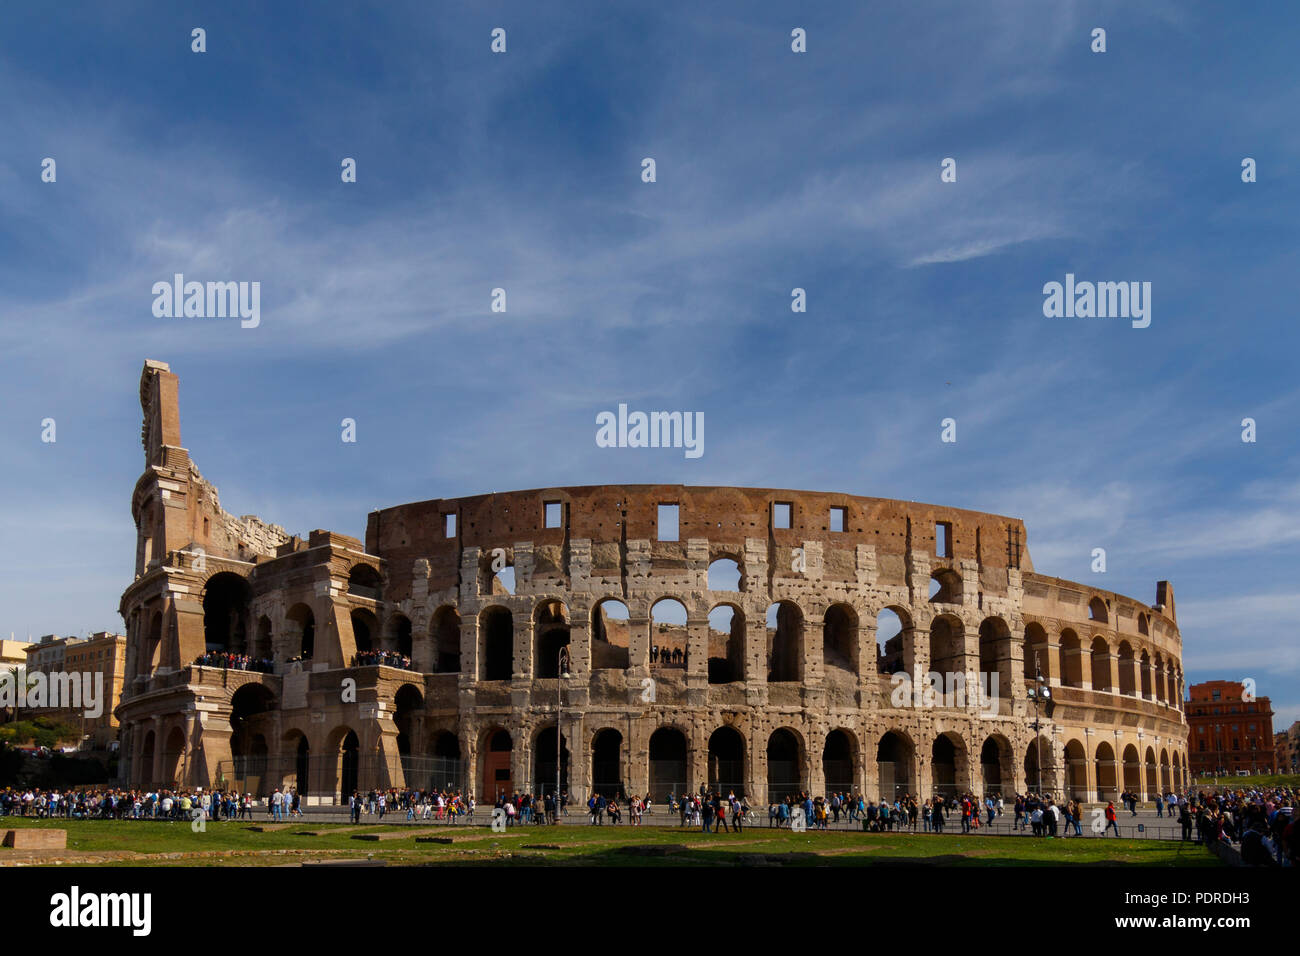 Colosseum of Rome at daylight, UNESCO World Heritage Site Rome, Rome, Italy Stock Photo